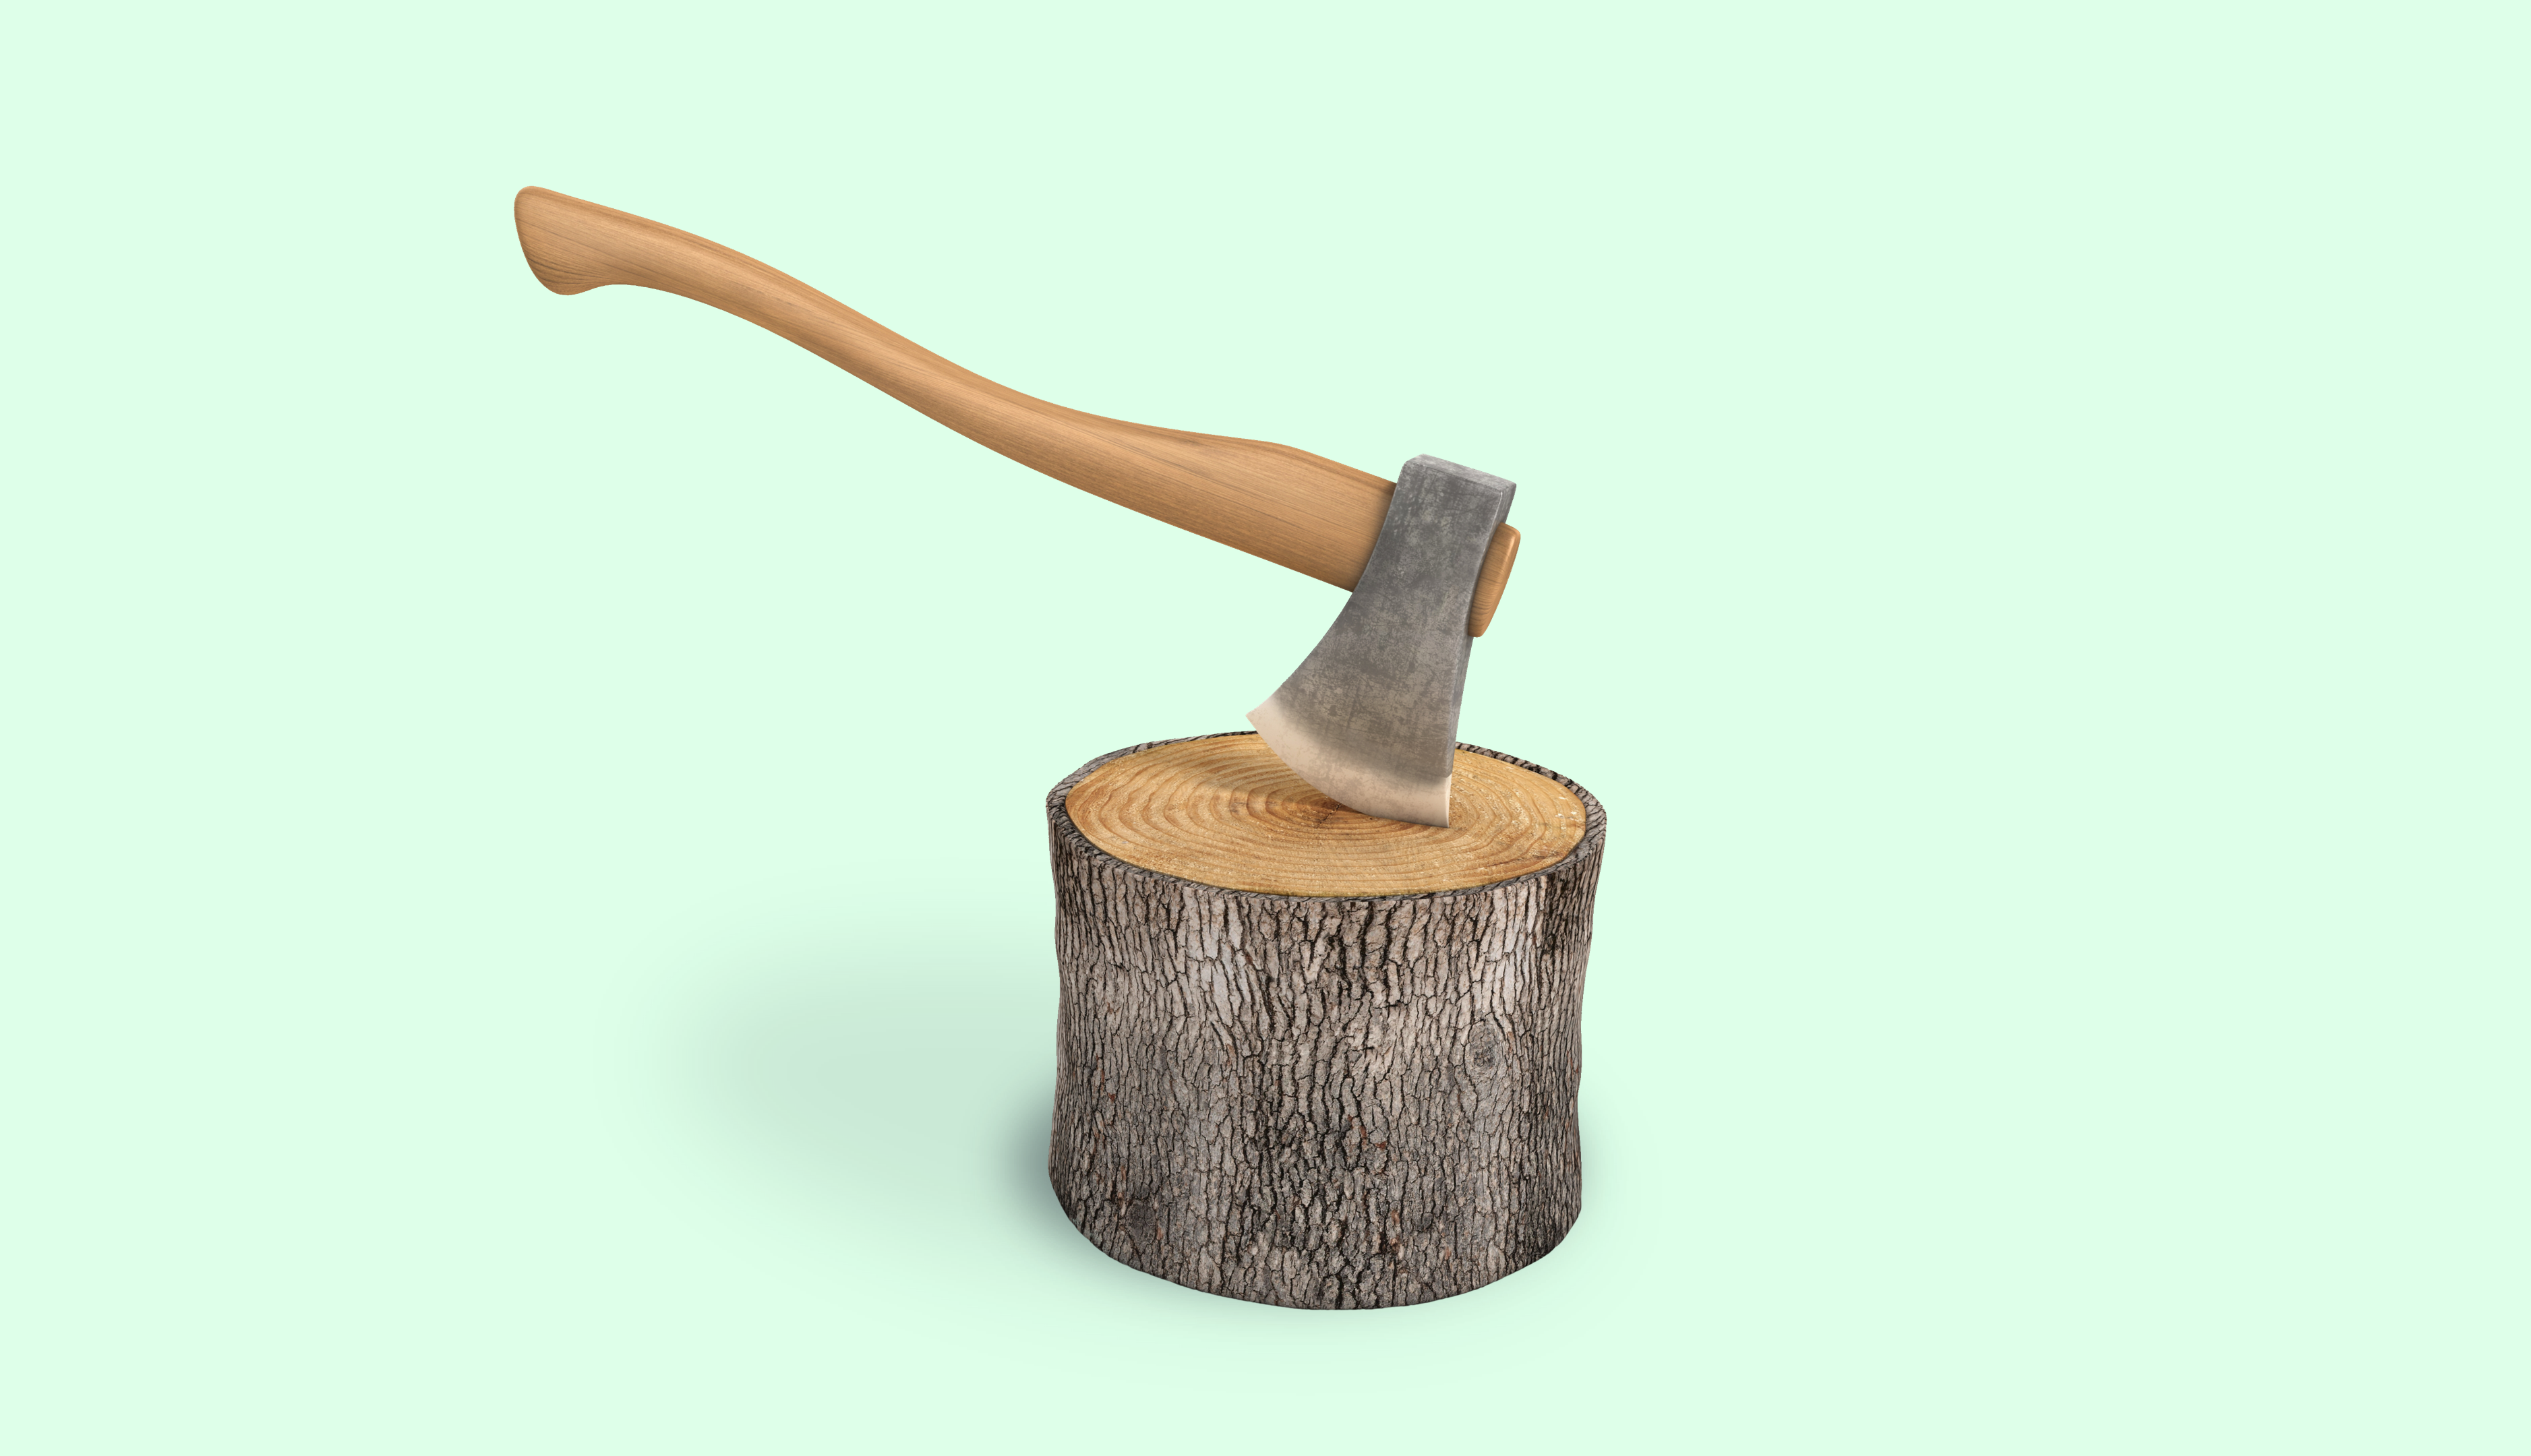 Title: The Health Savings Hack No One Knows About Grpahic: green background with axe in wood